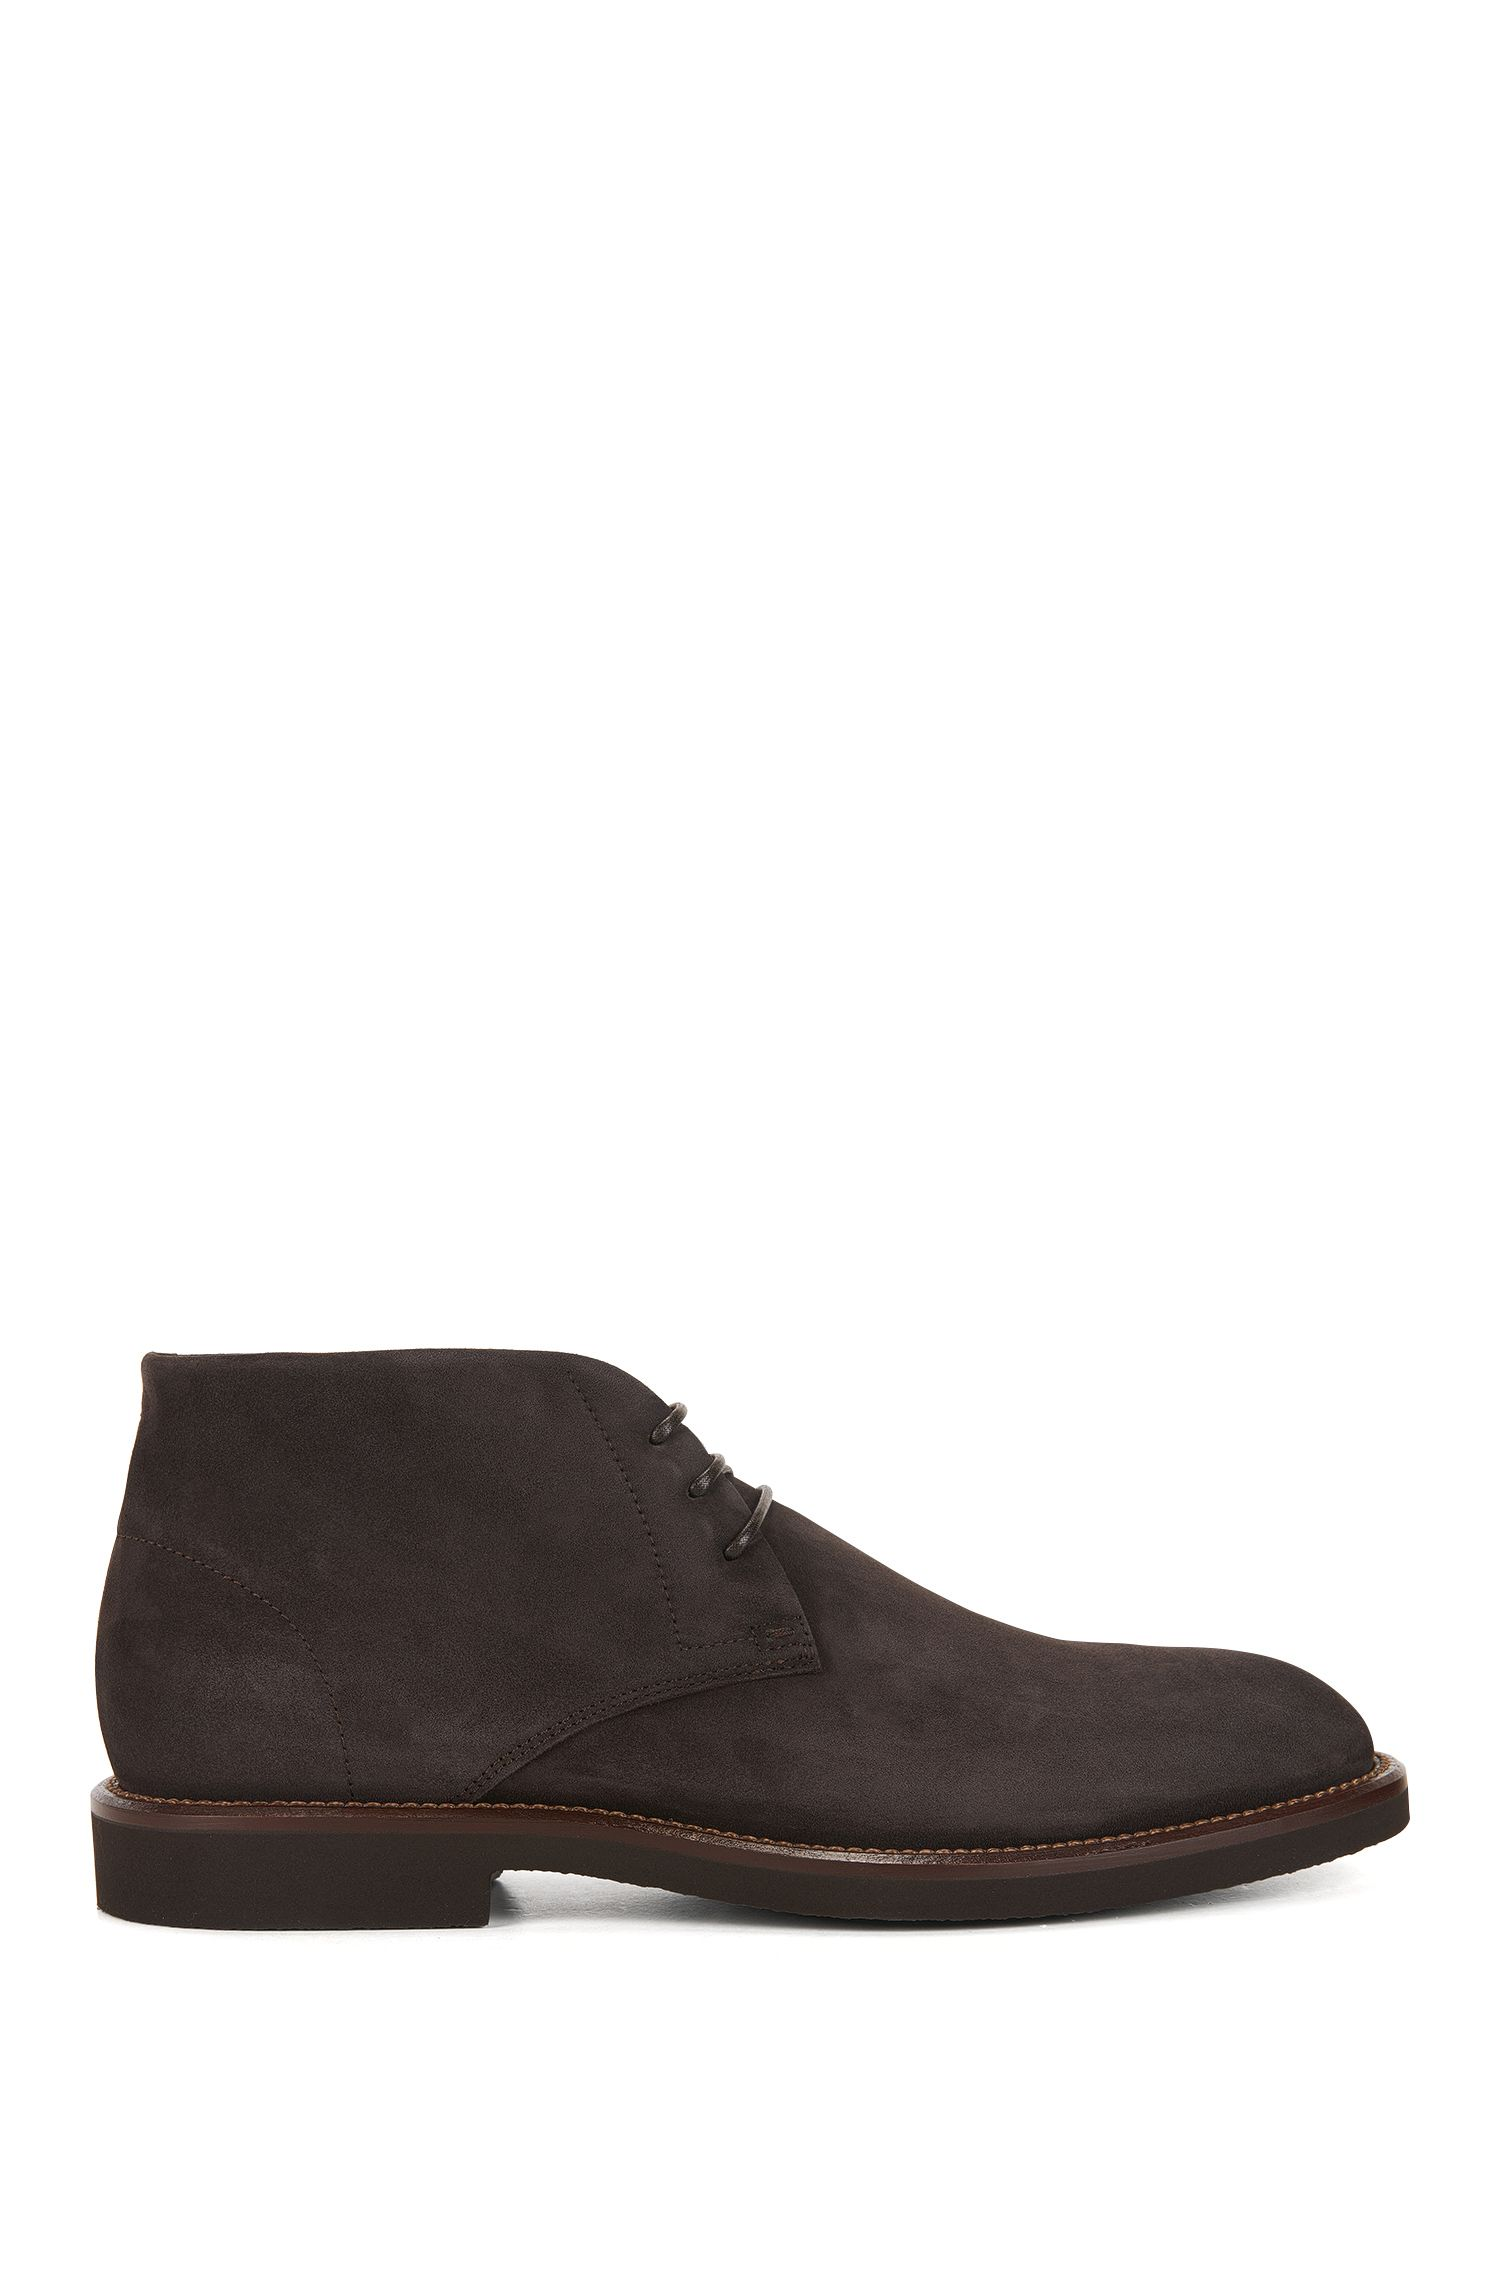 Lace-up desert boots in soft suede